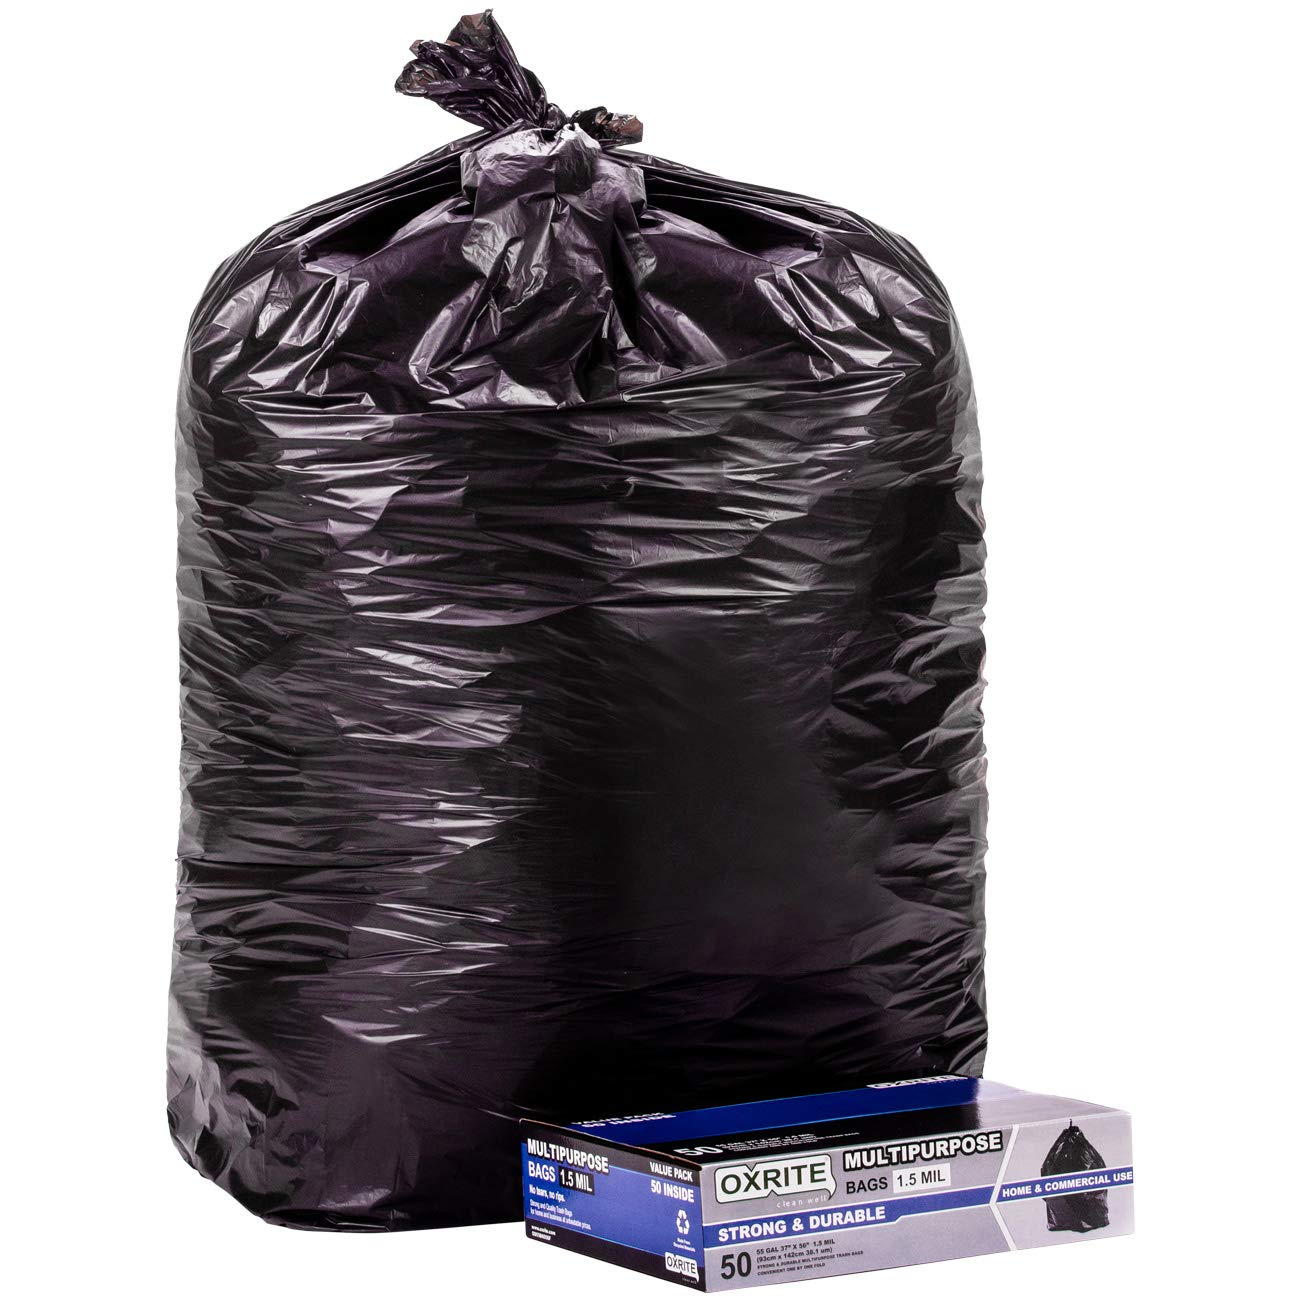 55 Gallon Trash Bags by OXRITE | Individually Folded, Heavy Duty Trash Bags, 1.5 Mil Thick, 50 Count, Black Garbage Bags